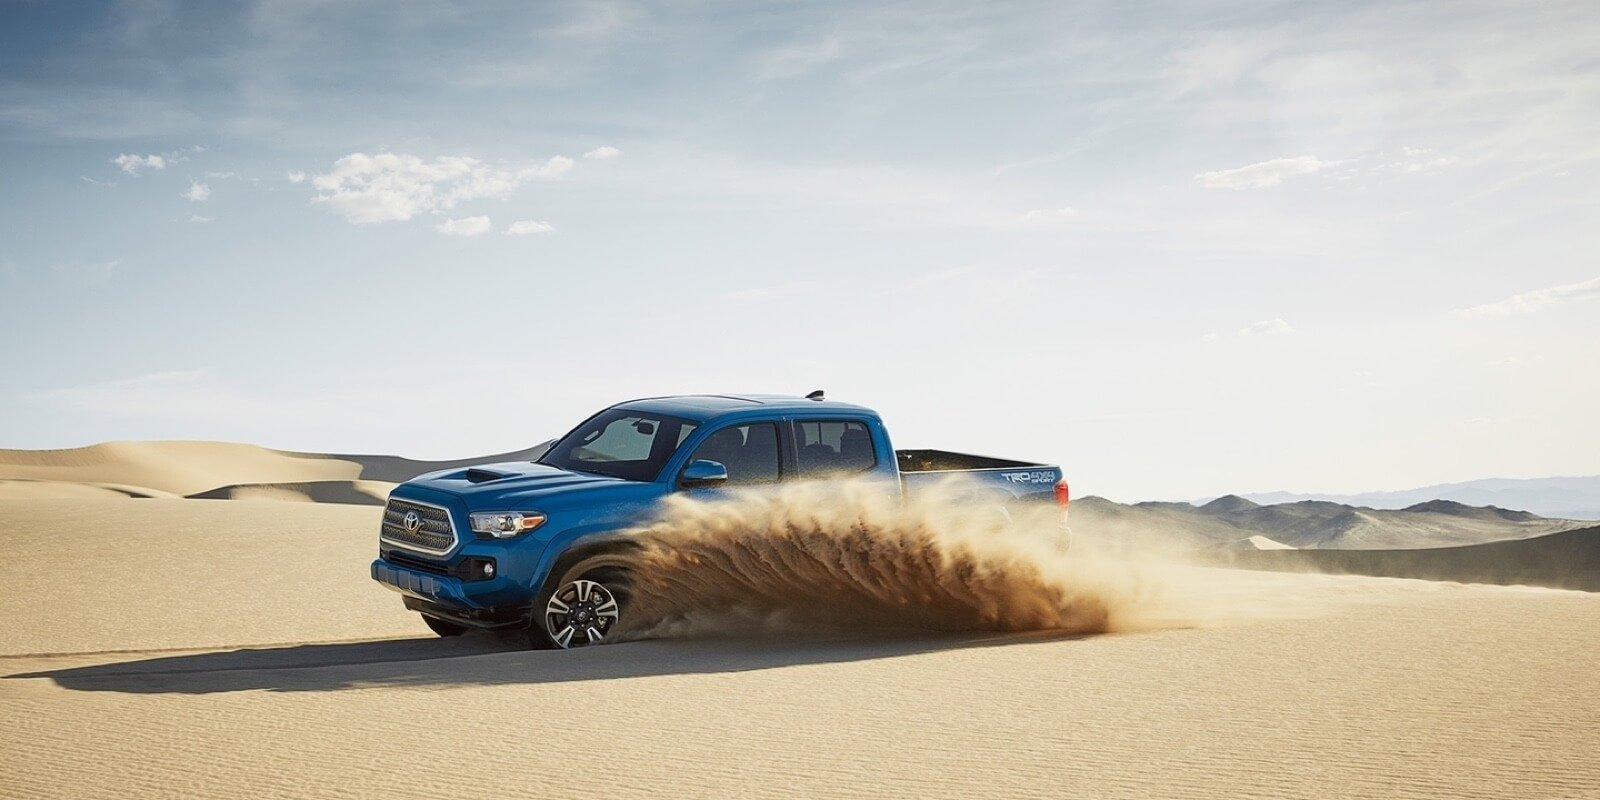 2017 Toyota Tacoma blue exterior model